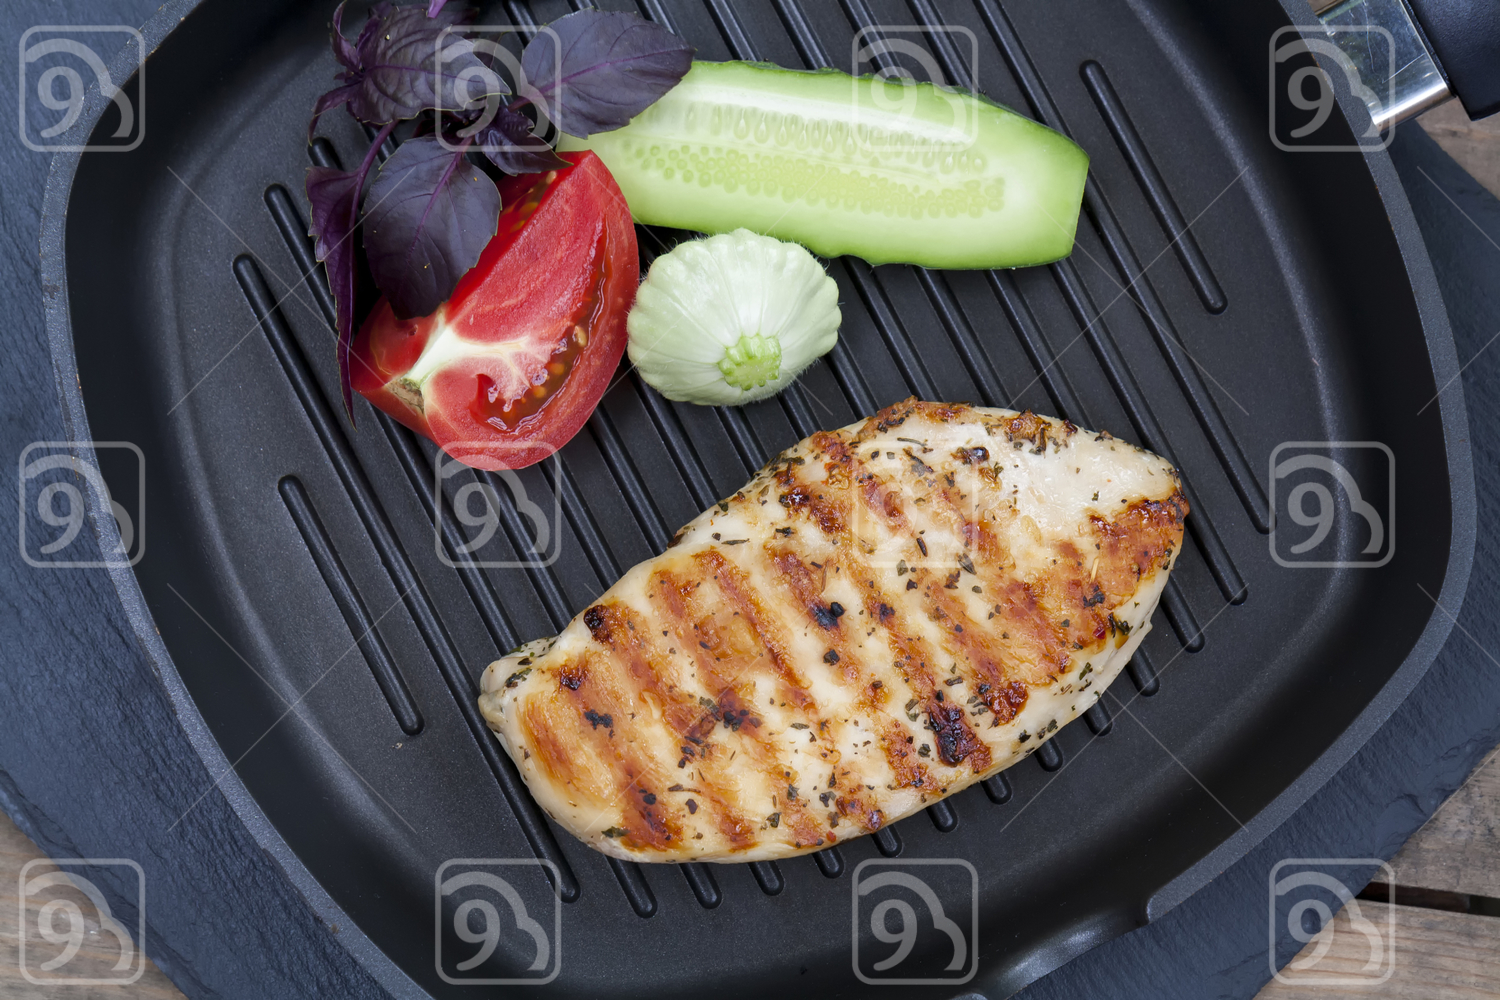 Grilled chicken breast with vegetables and herbs